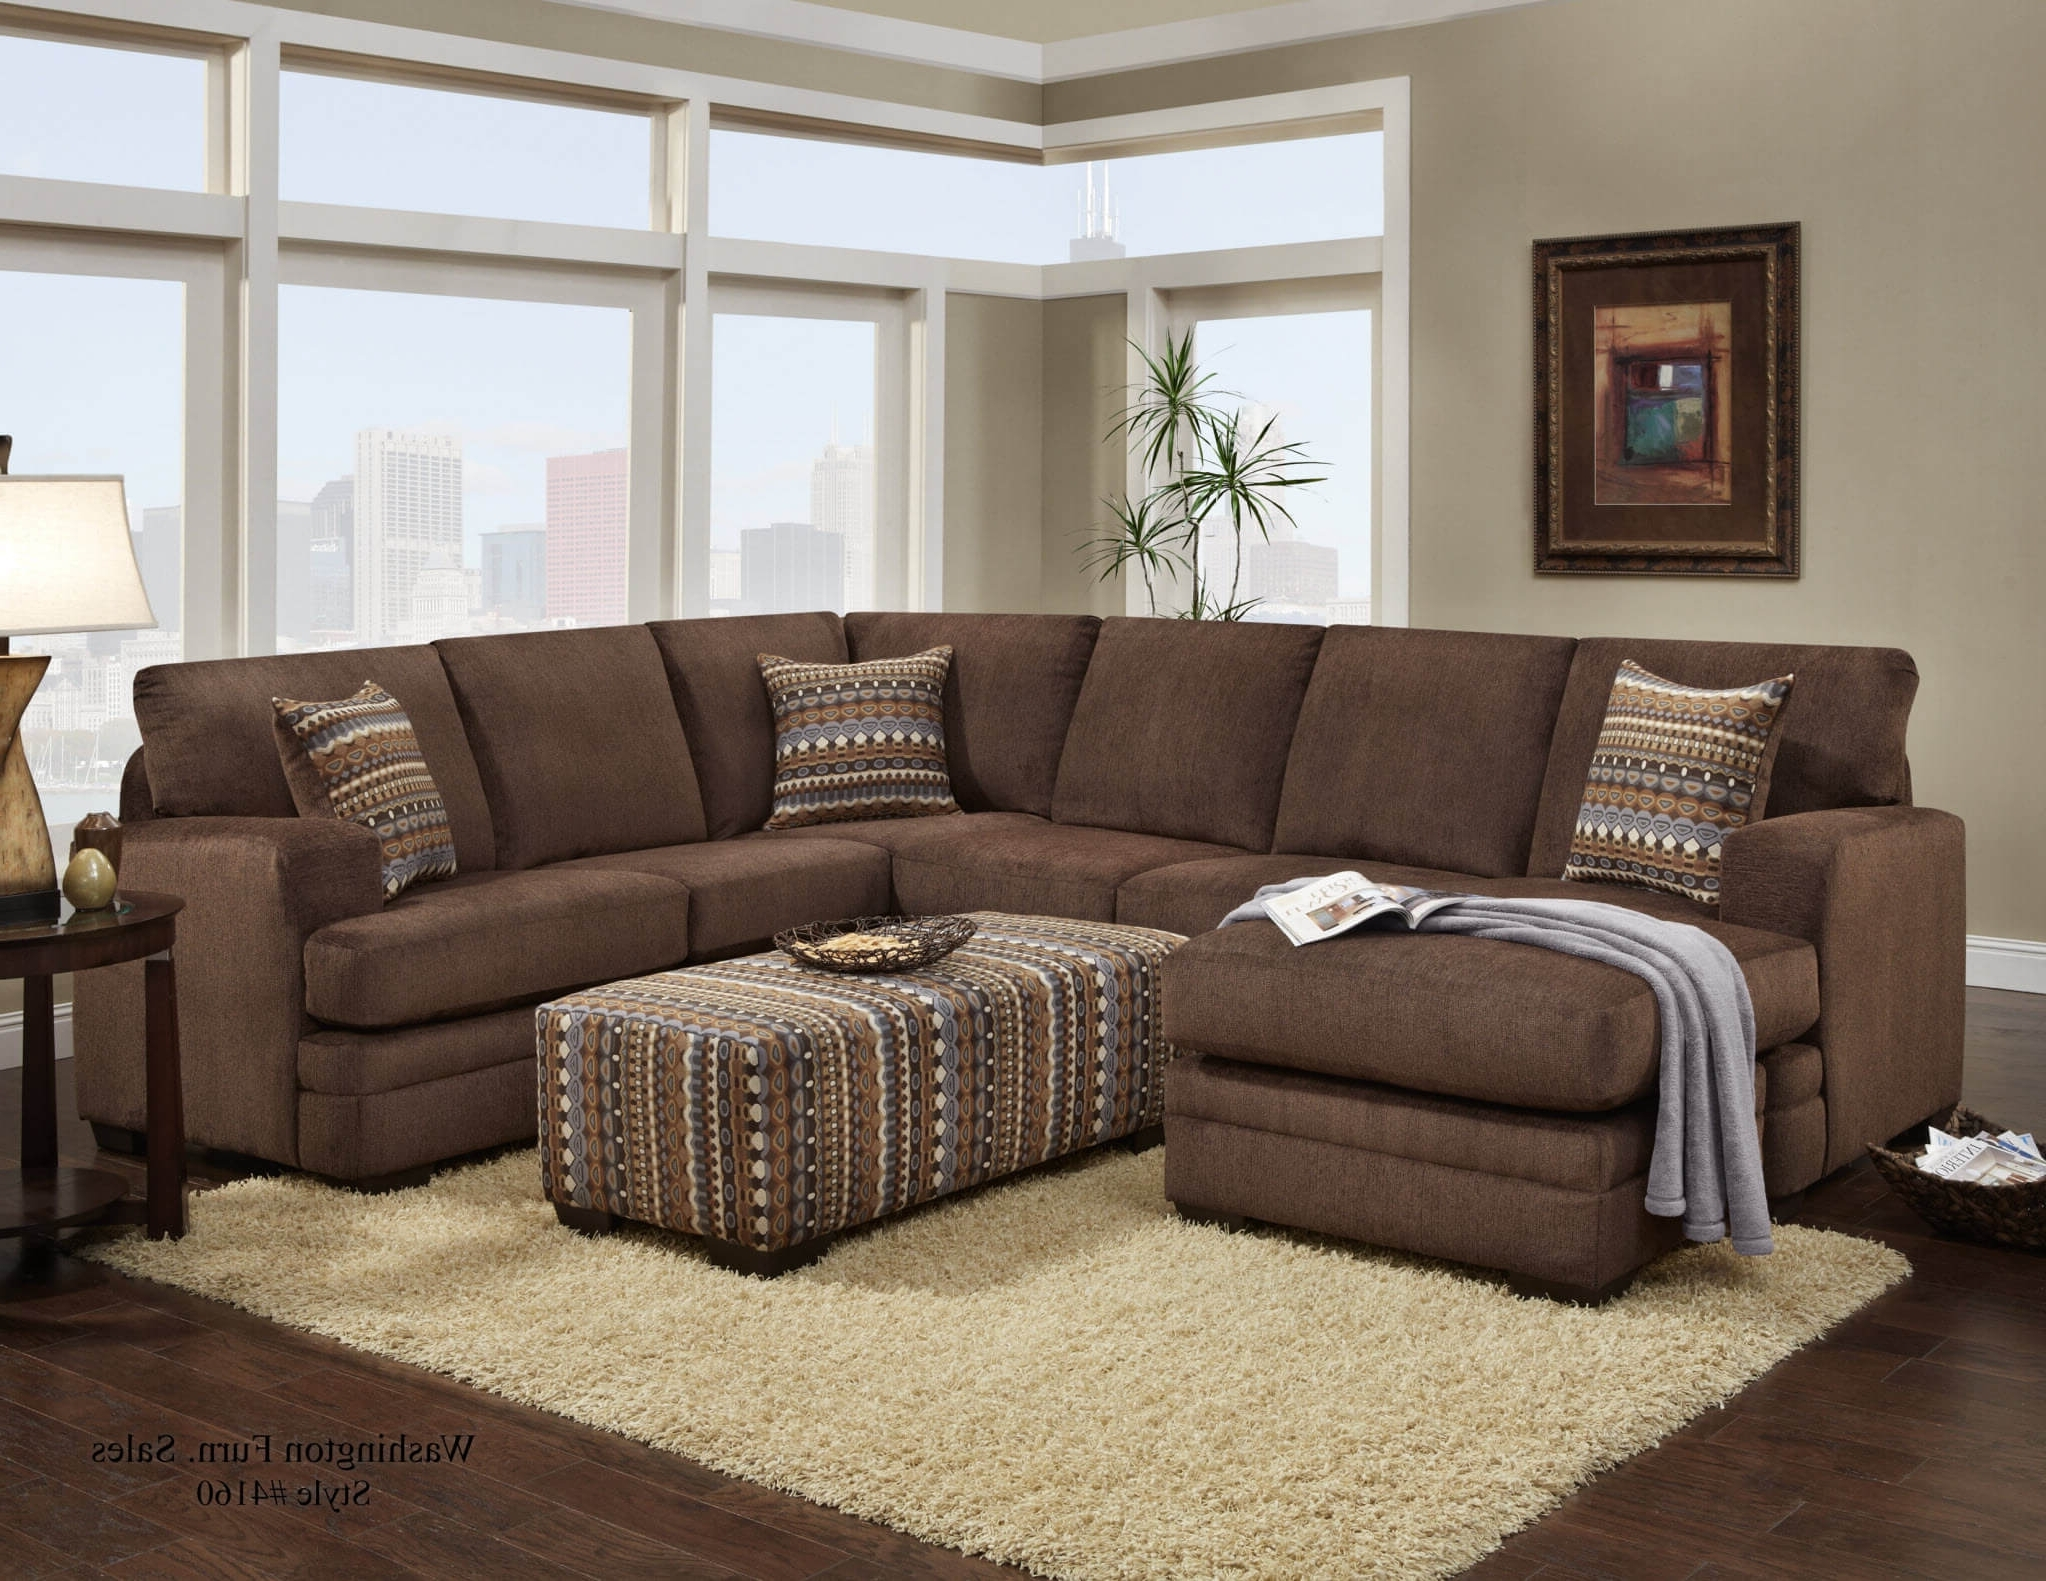 Chocolate Sectional Sofas For Famous Hillel Chocolate Sectional (View 3 of 20)